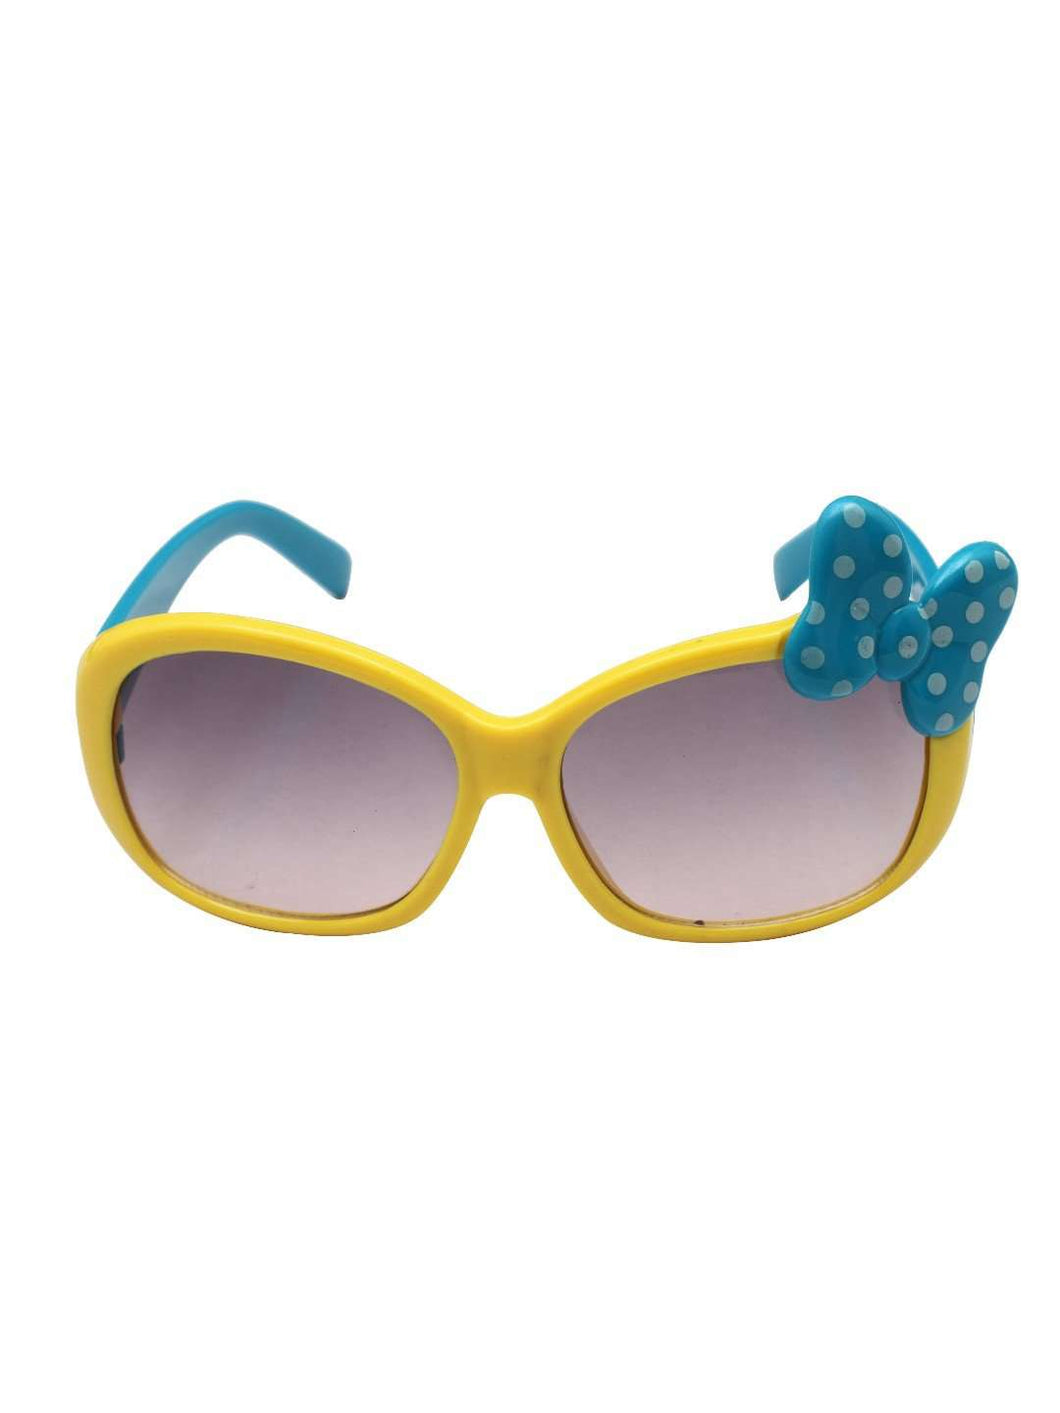 Stol'n Kids Yellow and Blue Bow Applique Rectangular Sunglasses - SWHF